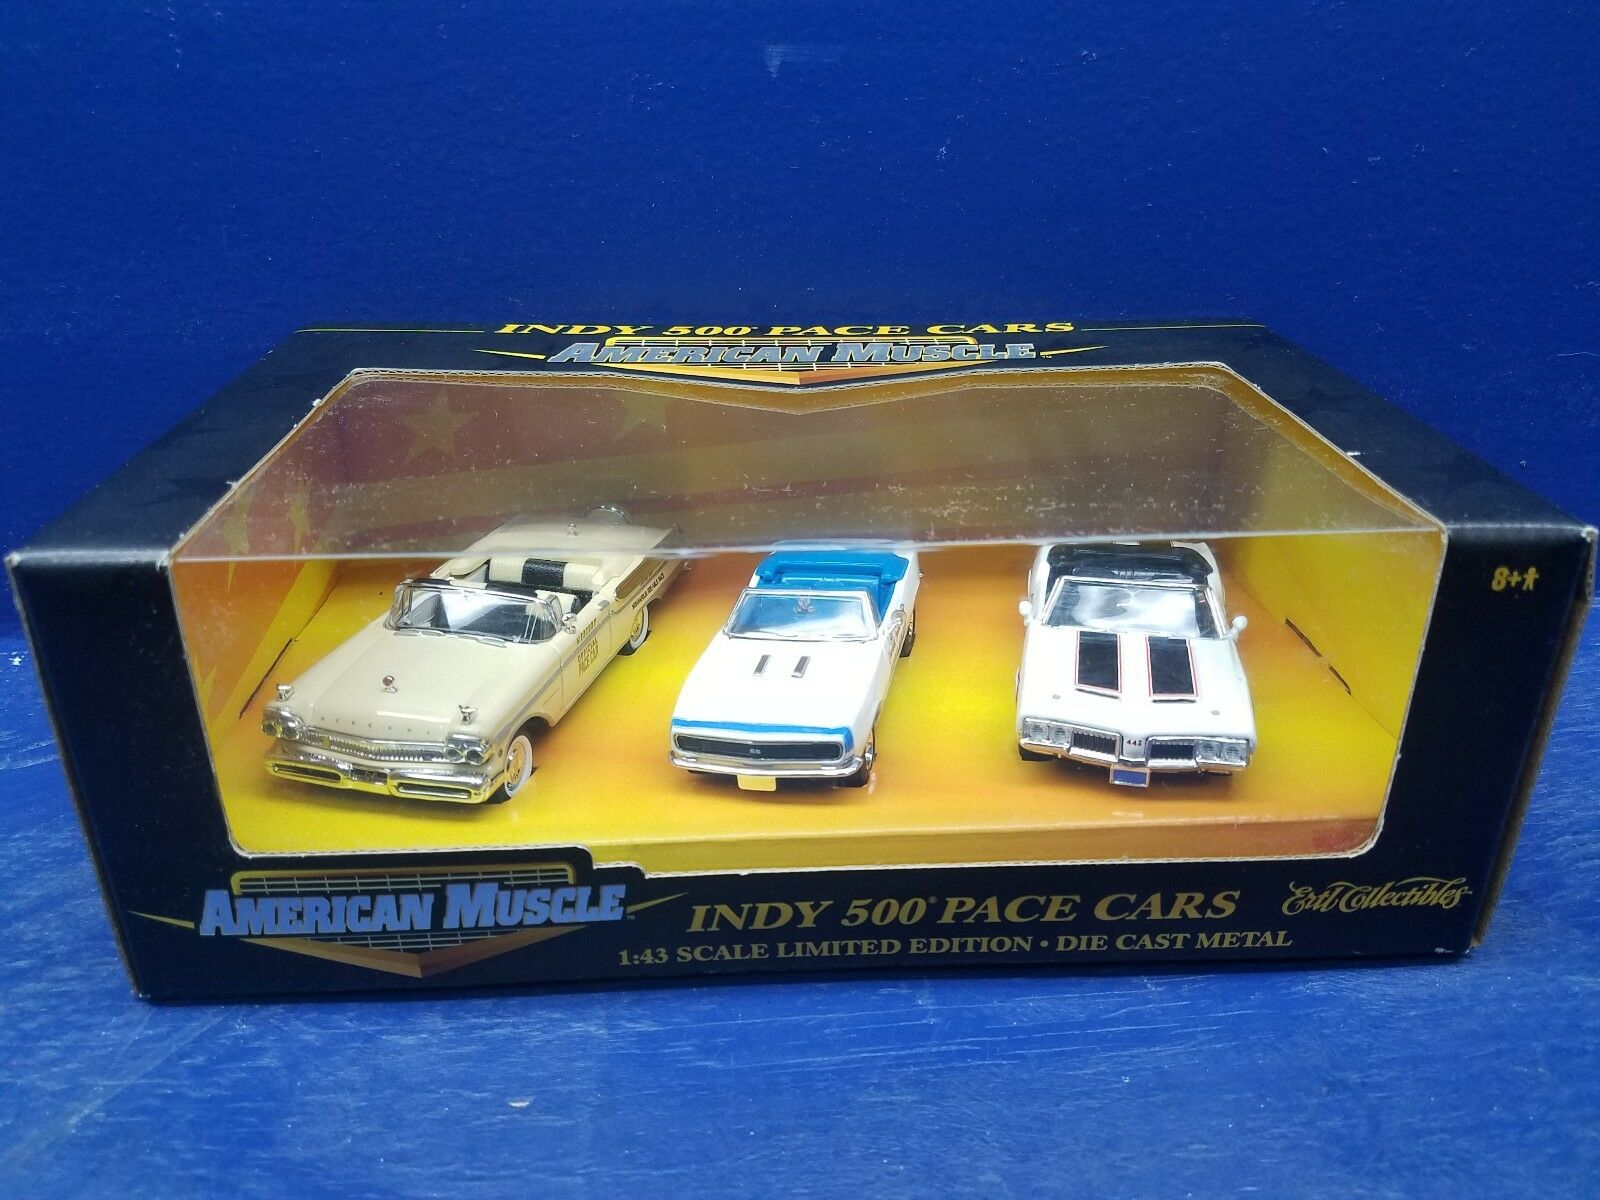 Indy 500 Pace Cars 57 Merc., 67 Chevy, 70 Olds Olds Olds 442 American Muscle 1 43 Scale 1fb3de